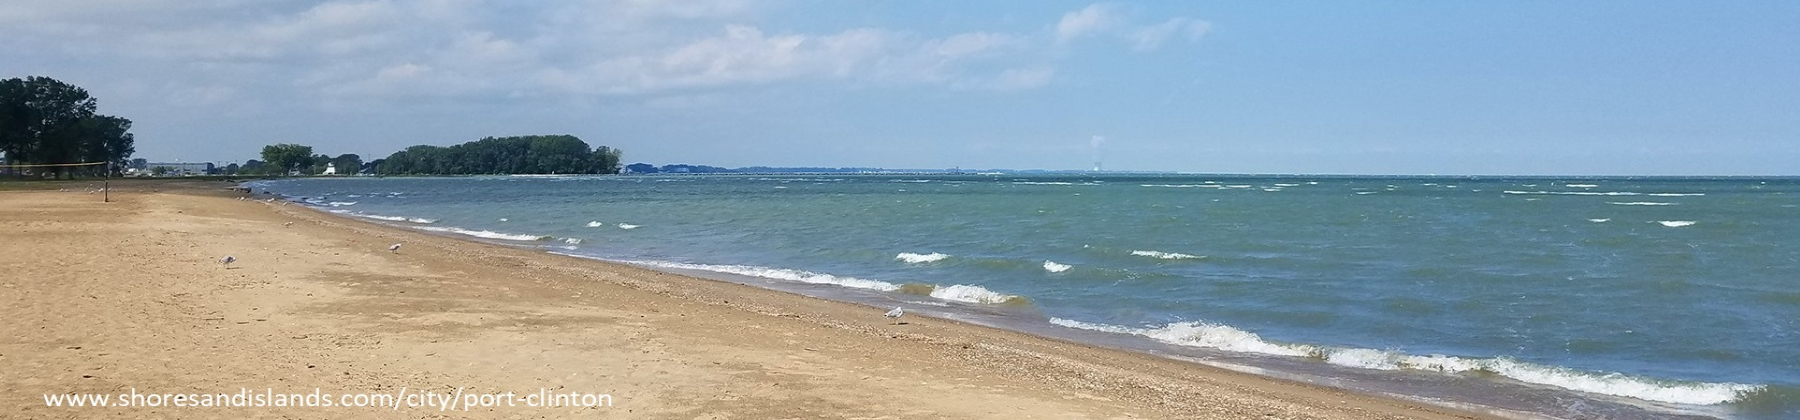 Port Clinton beach